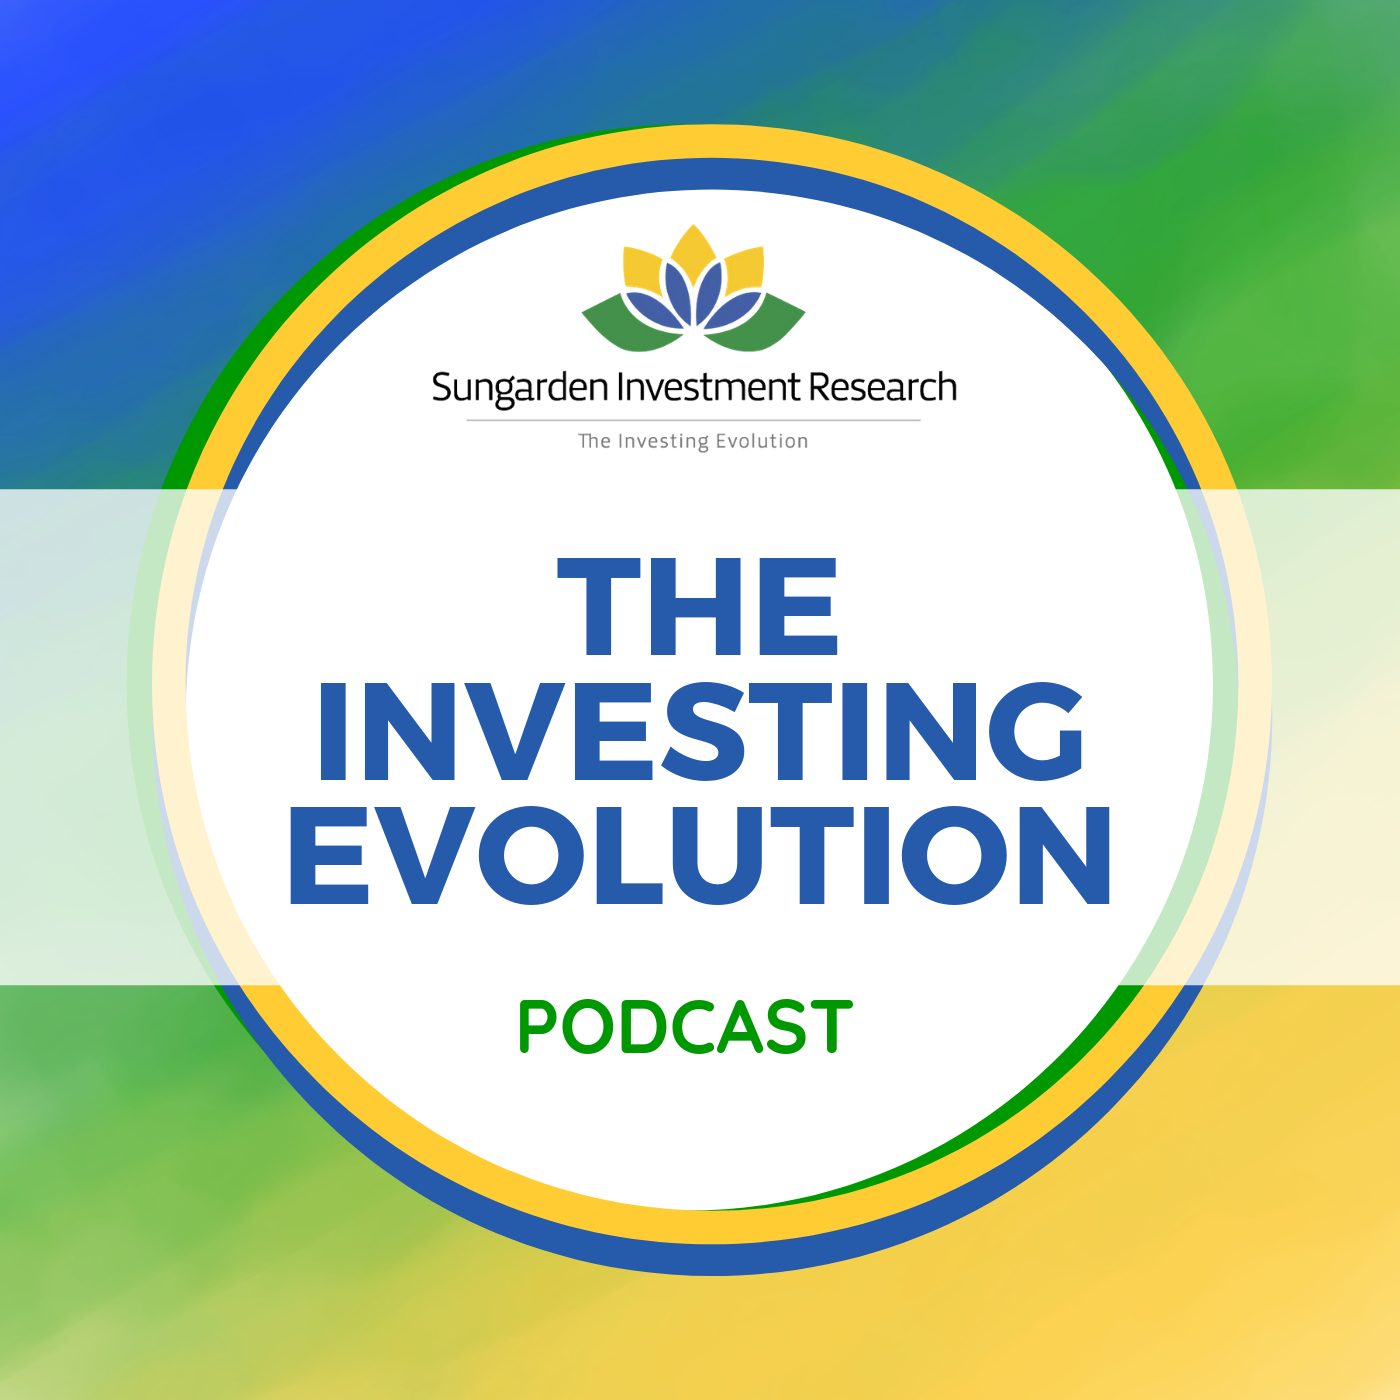 The Investing Evolution Podcast